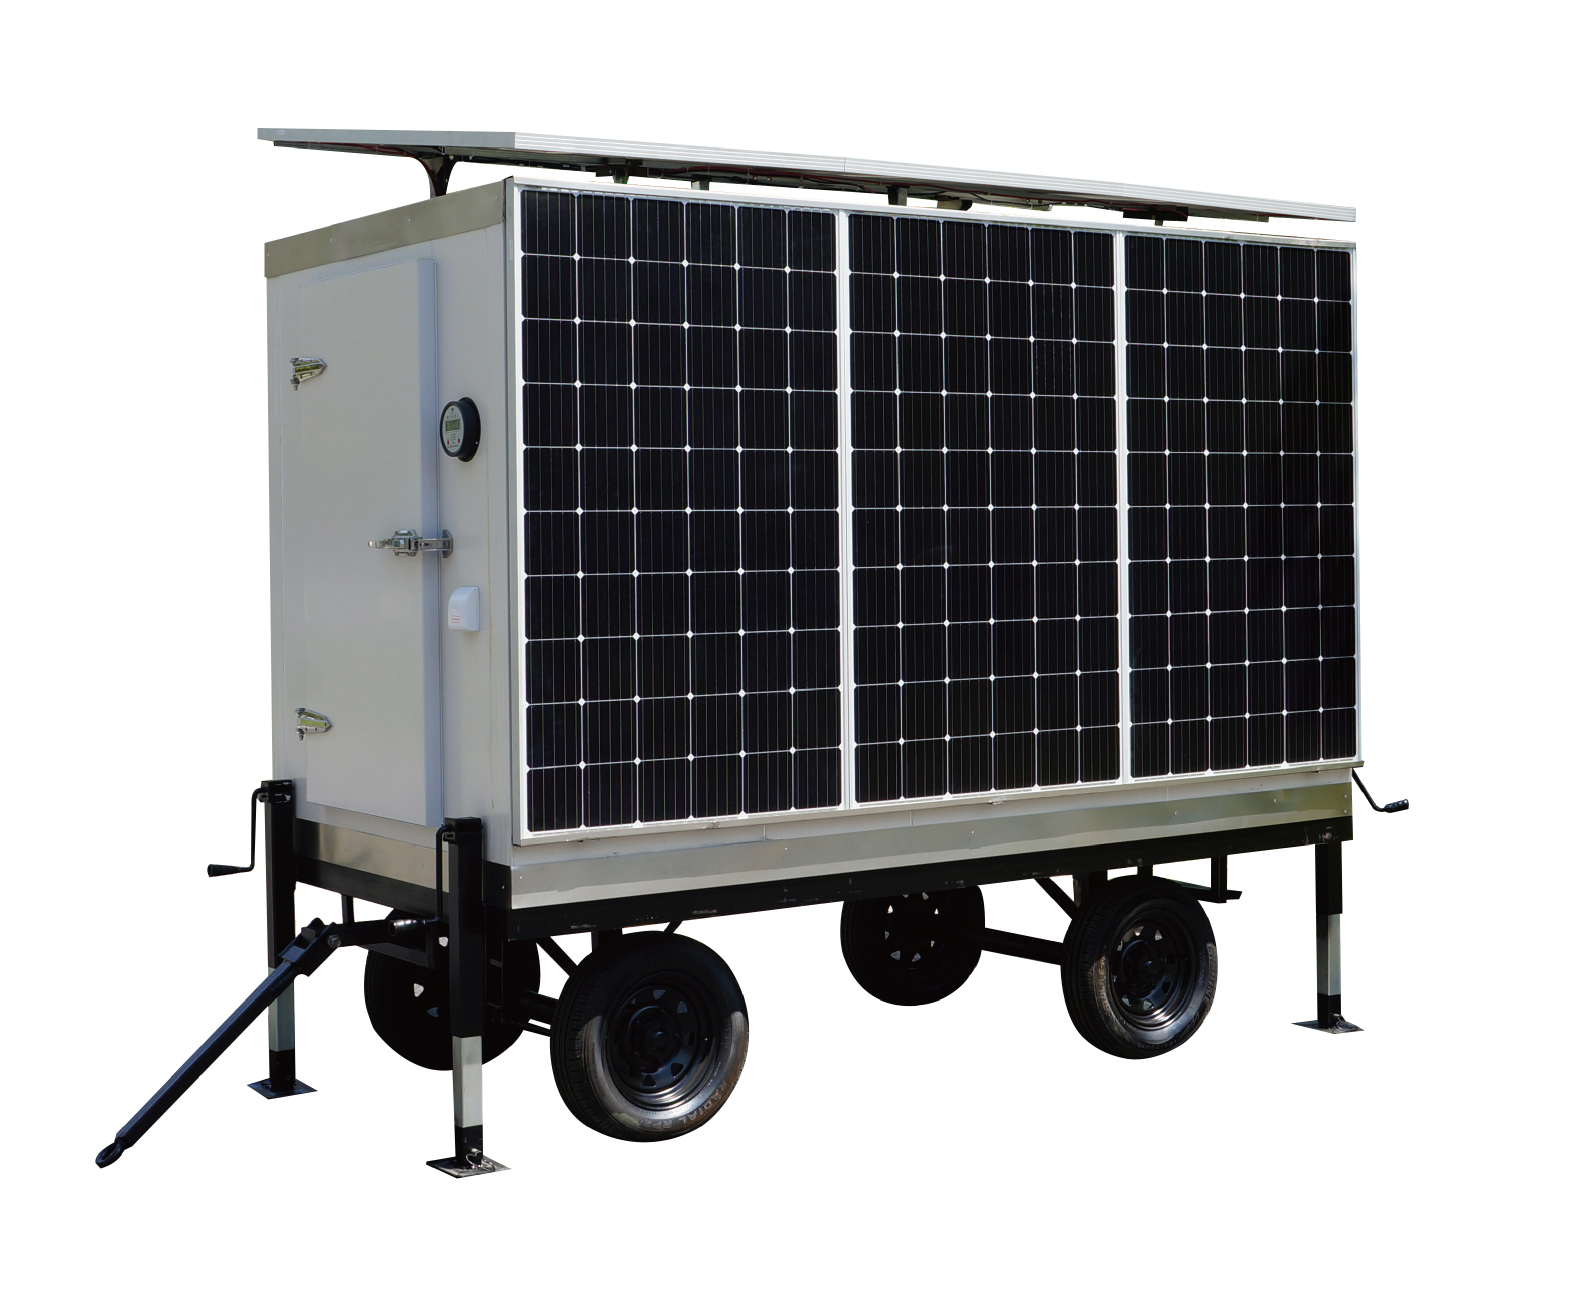 SMART SOLAR FREEZER / GENSET DUAL-USE COLD STORAGE